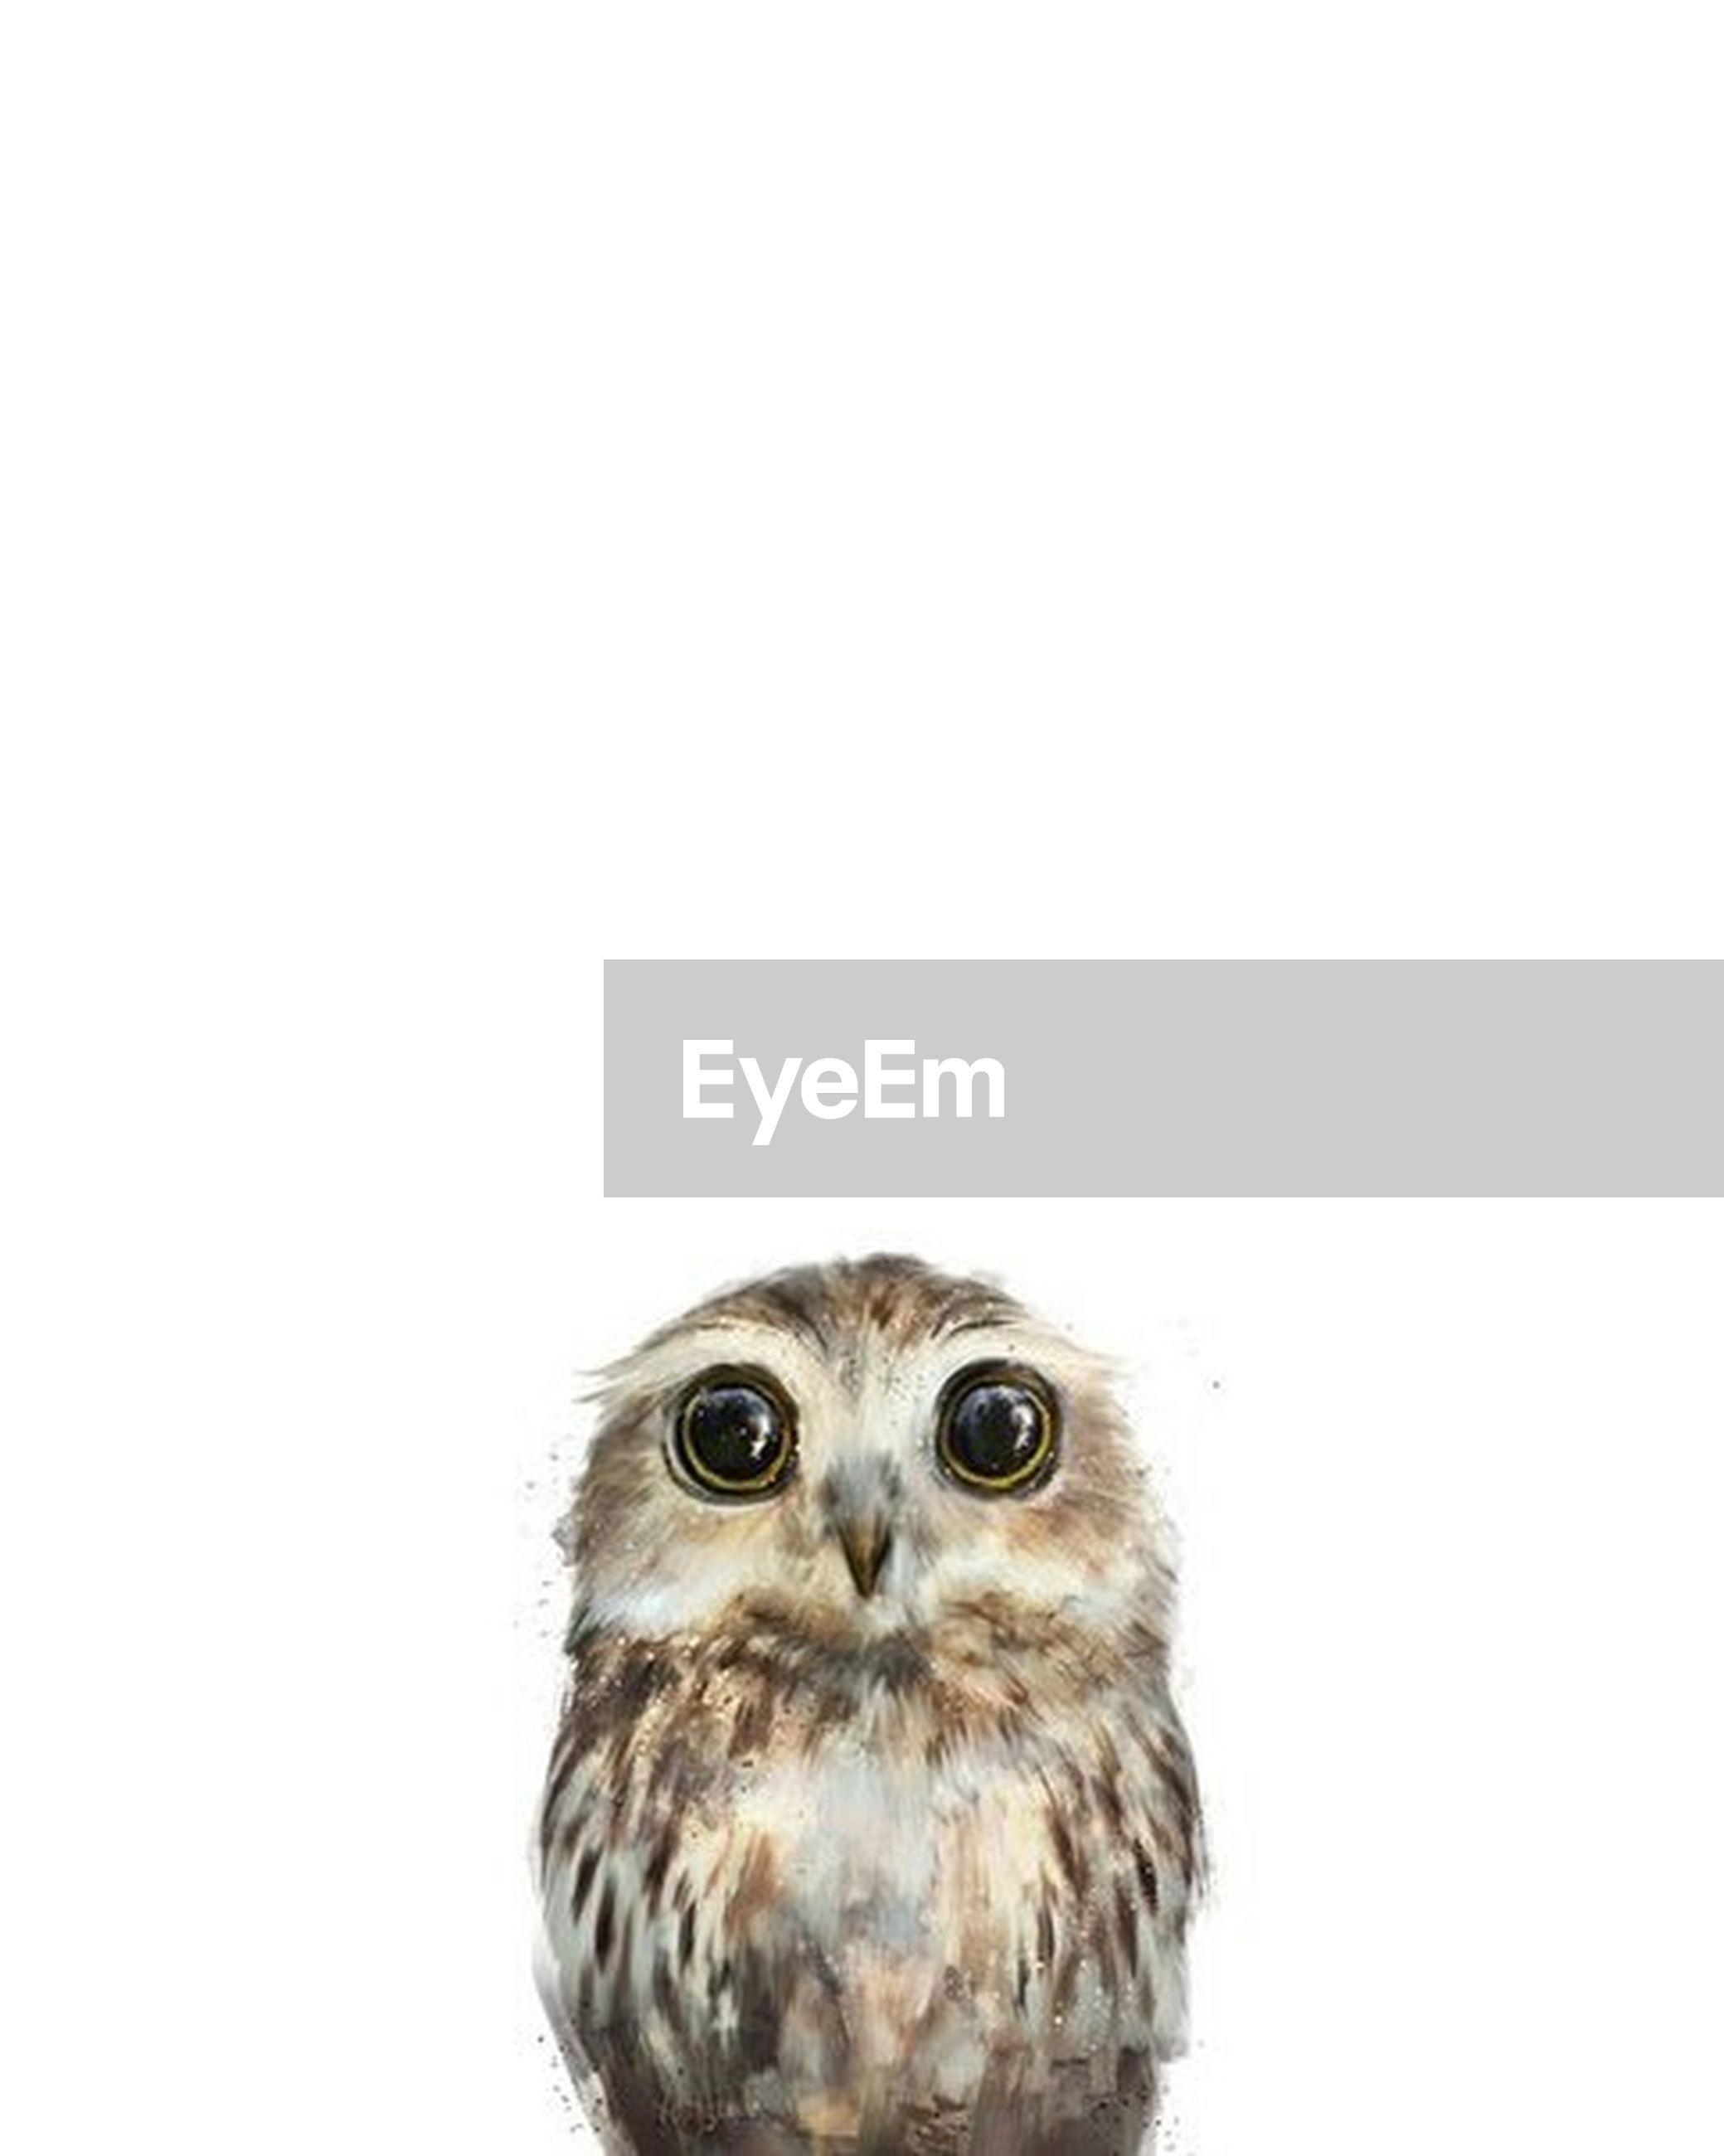 animal themes, one animal, studio shot, white background, copy space, wildlife, animals in the wild, portrait, looking at camera, bird, clear sky, close-up, cut out, animal head, front view, no people, animal eye, bird of prey, animal body part